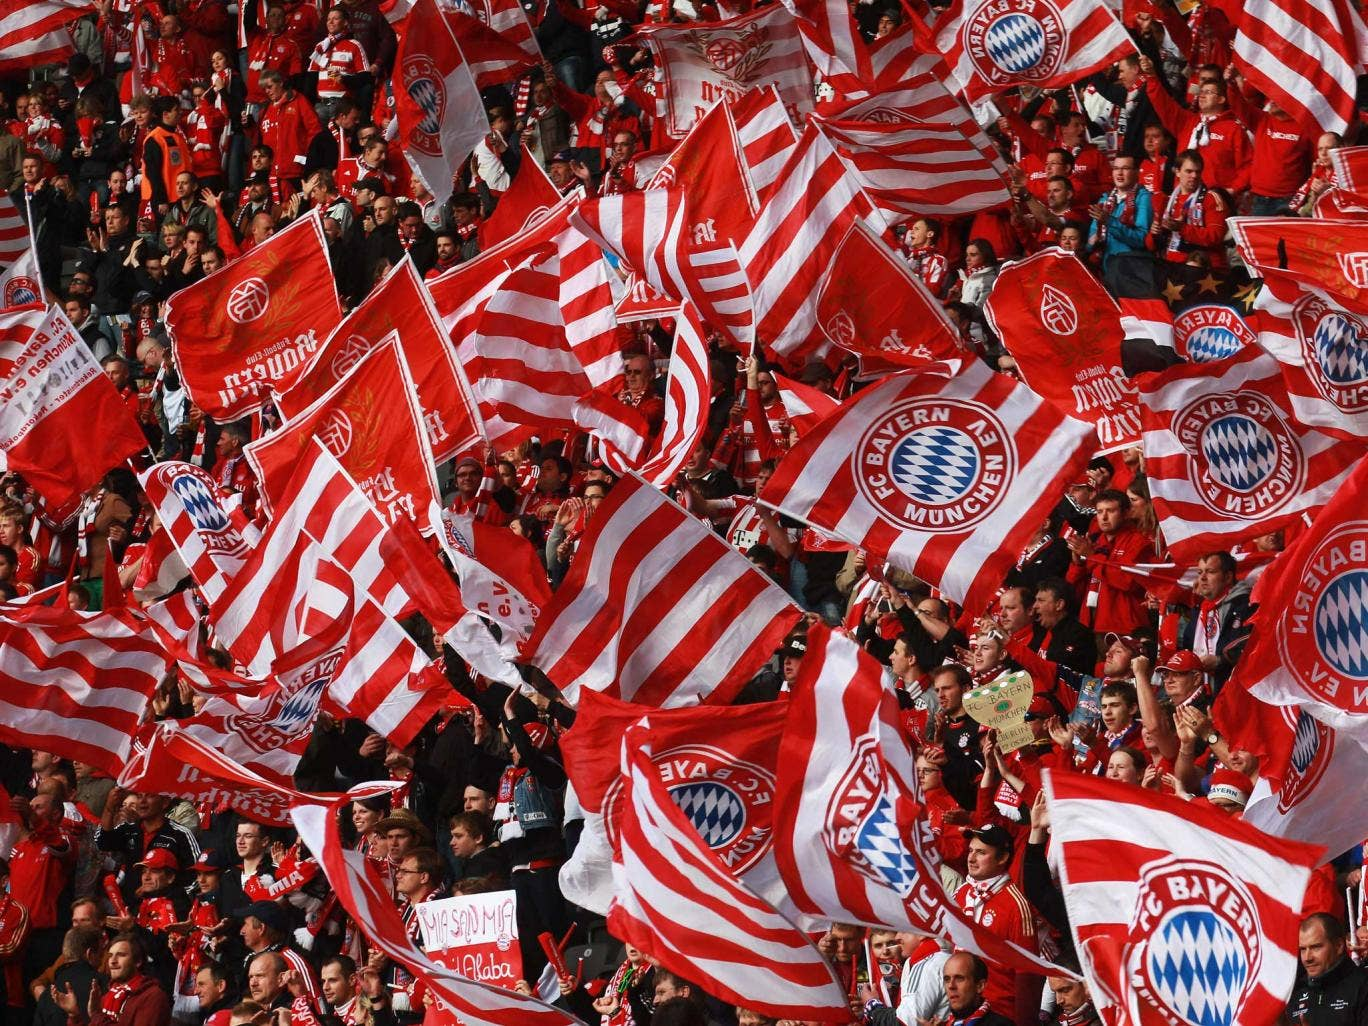 Crowds support Bayern Munich at a recent match